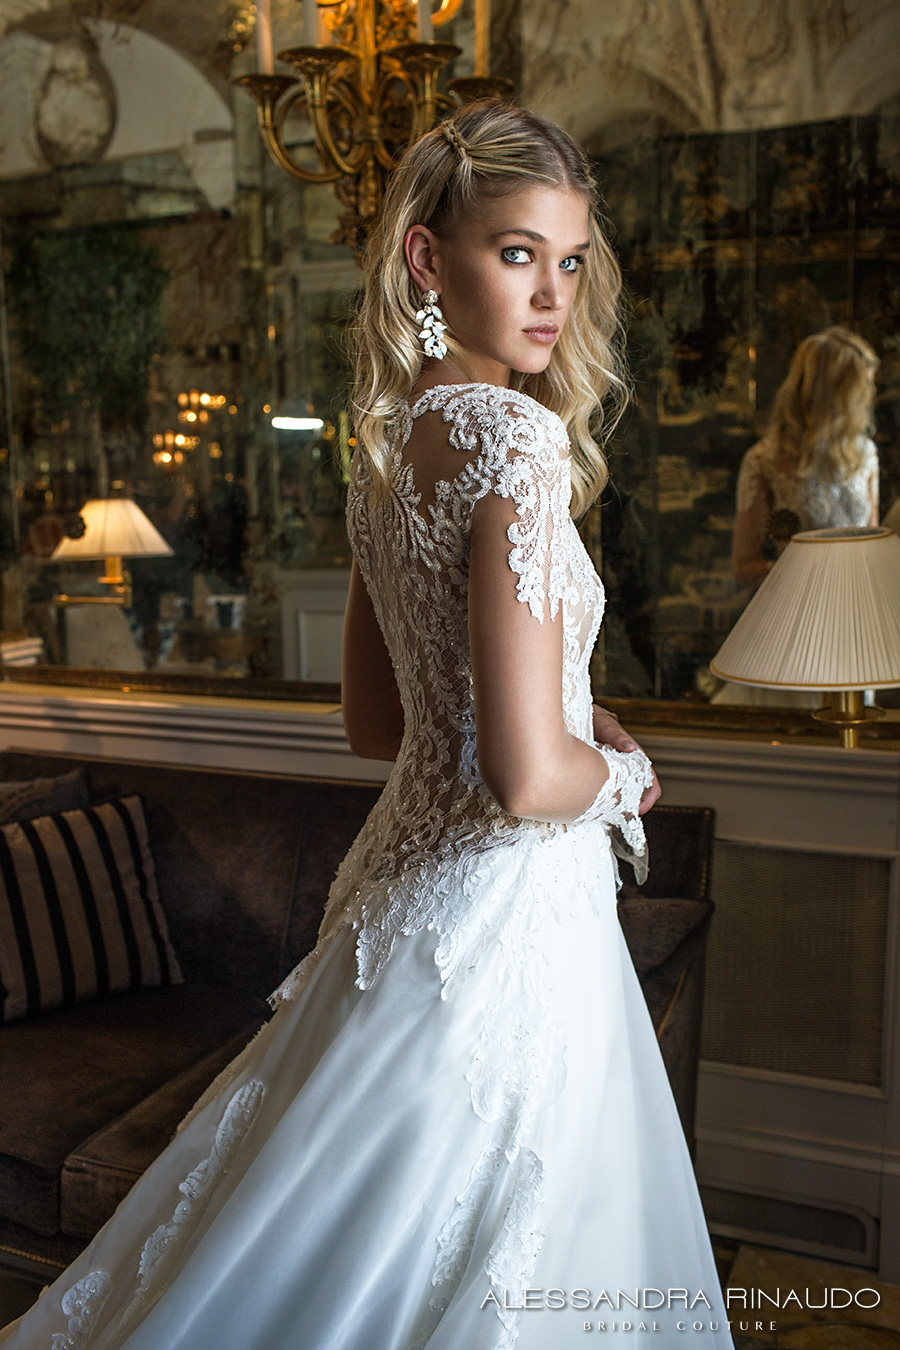 alessandra rinaudo 2017 bridal long sleeves round neck lace heavily embellished bodice drop waist elegant a line wedding dress lace back long train (brunilde) zbv